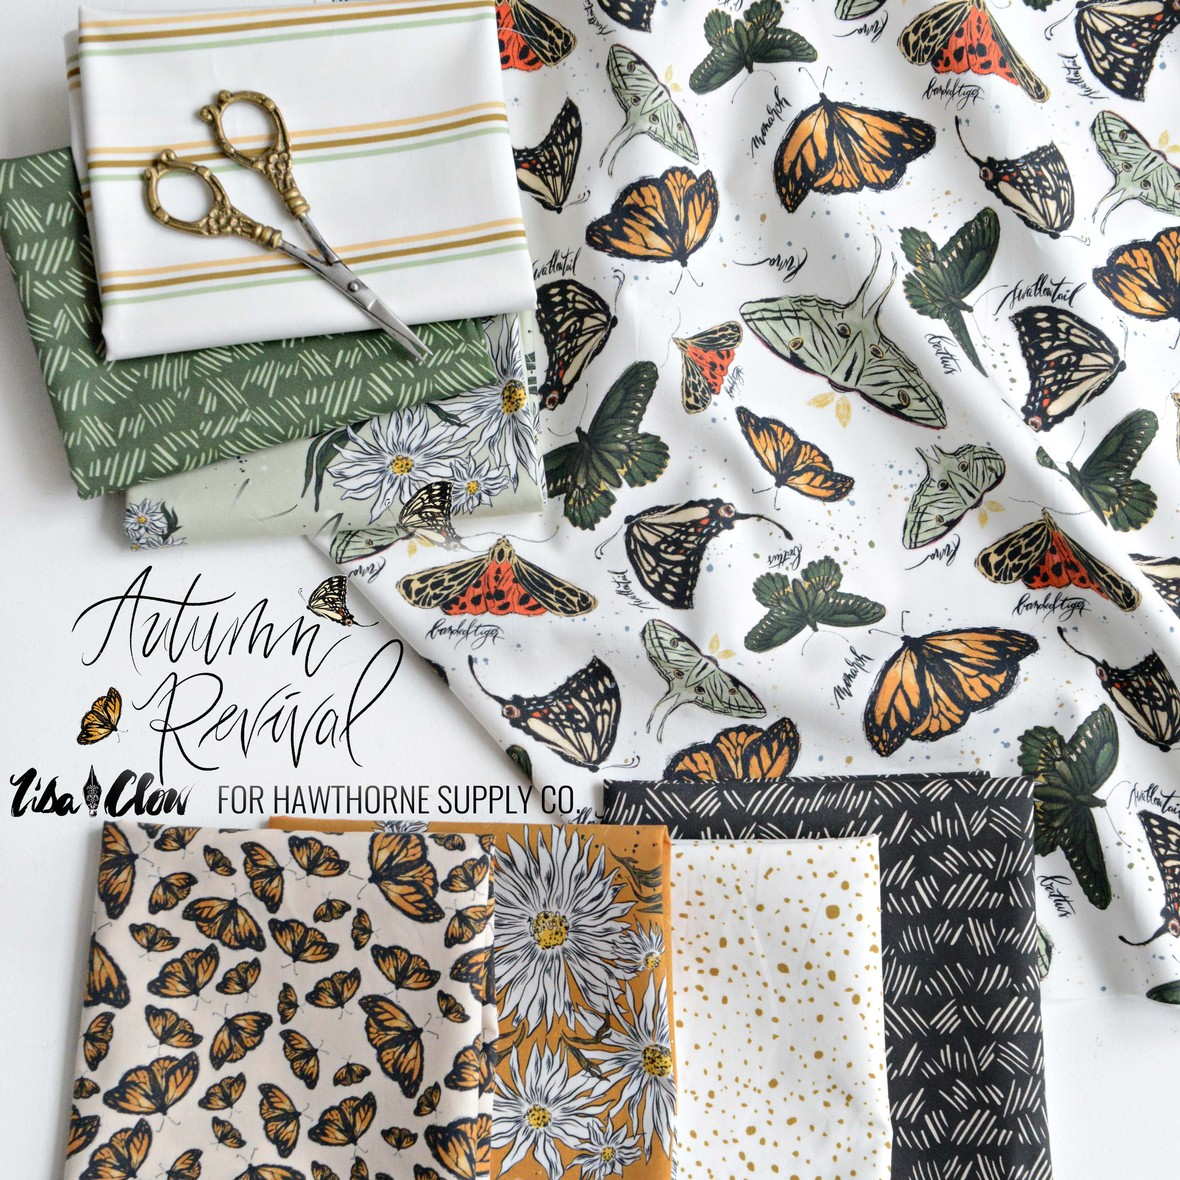 Autumn Reviva fabricl from Lisa Clow at Hawthorne Supply Co.